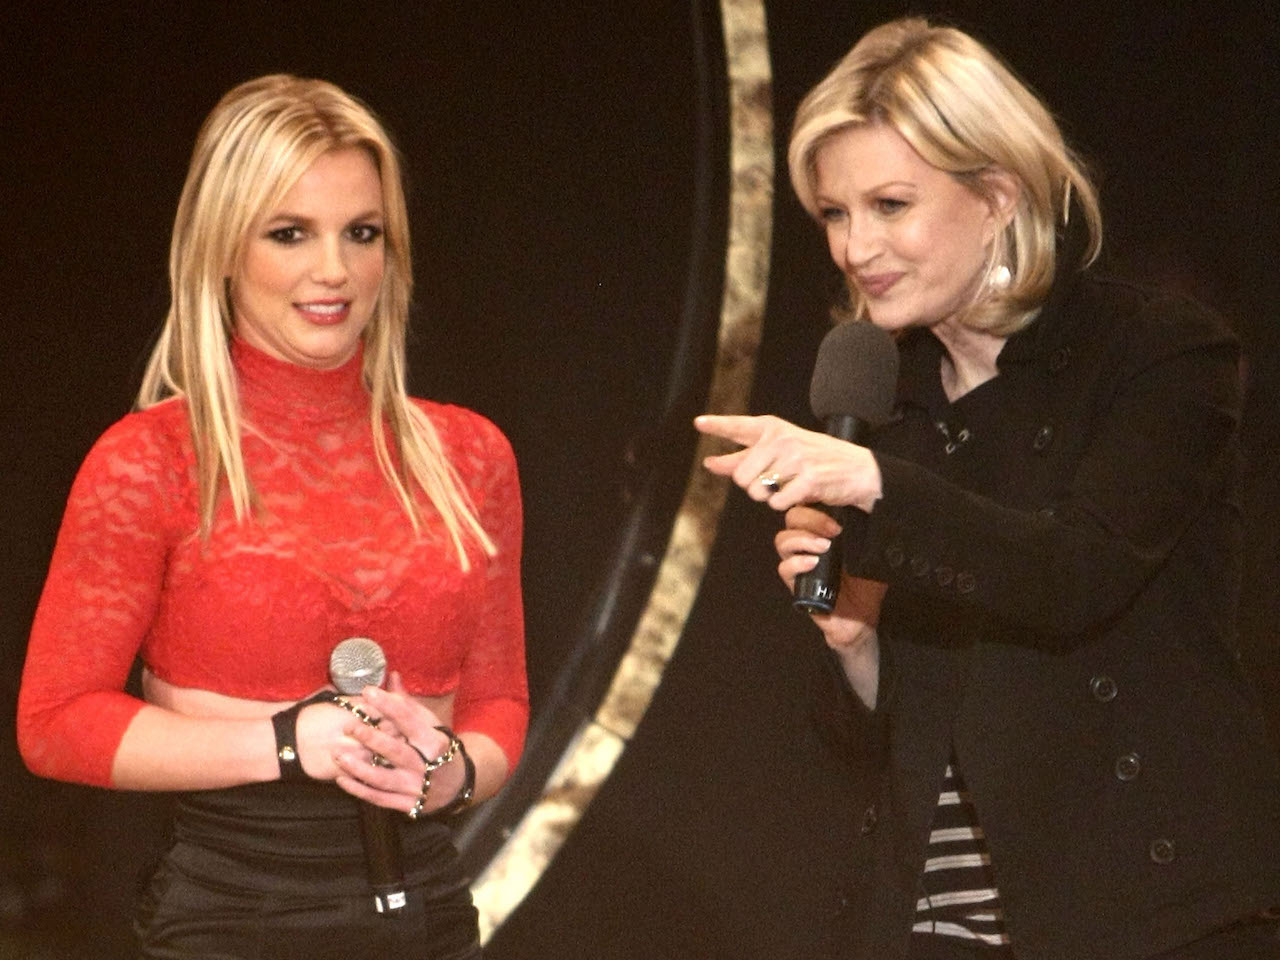 A photo of Britney Spears with Diane Sawyer in 2008.